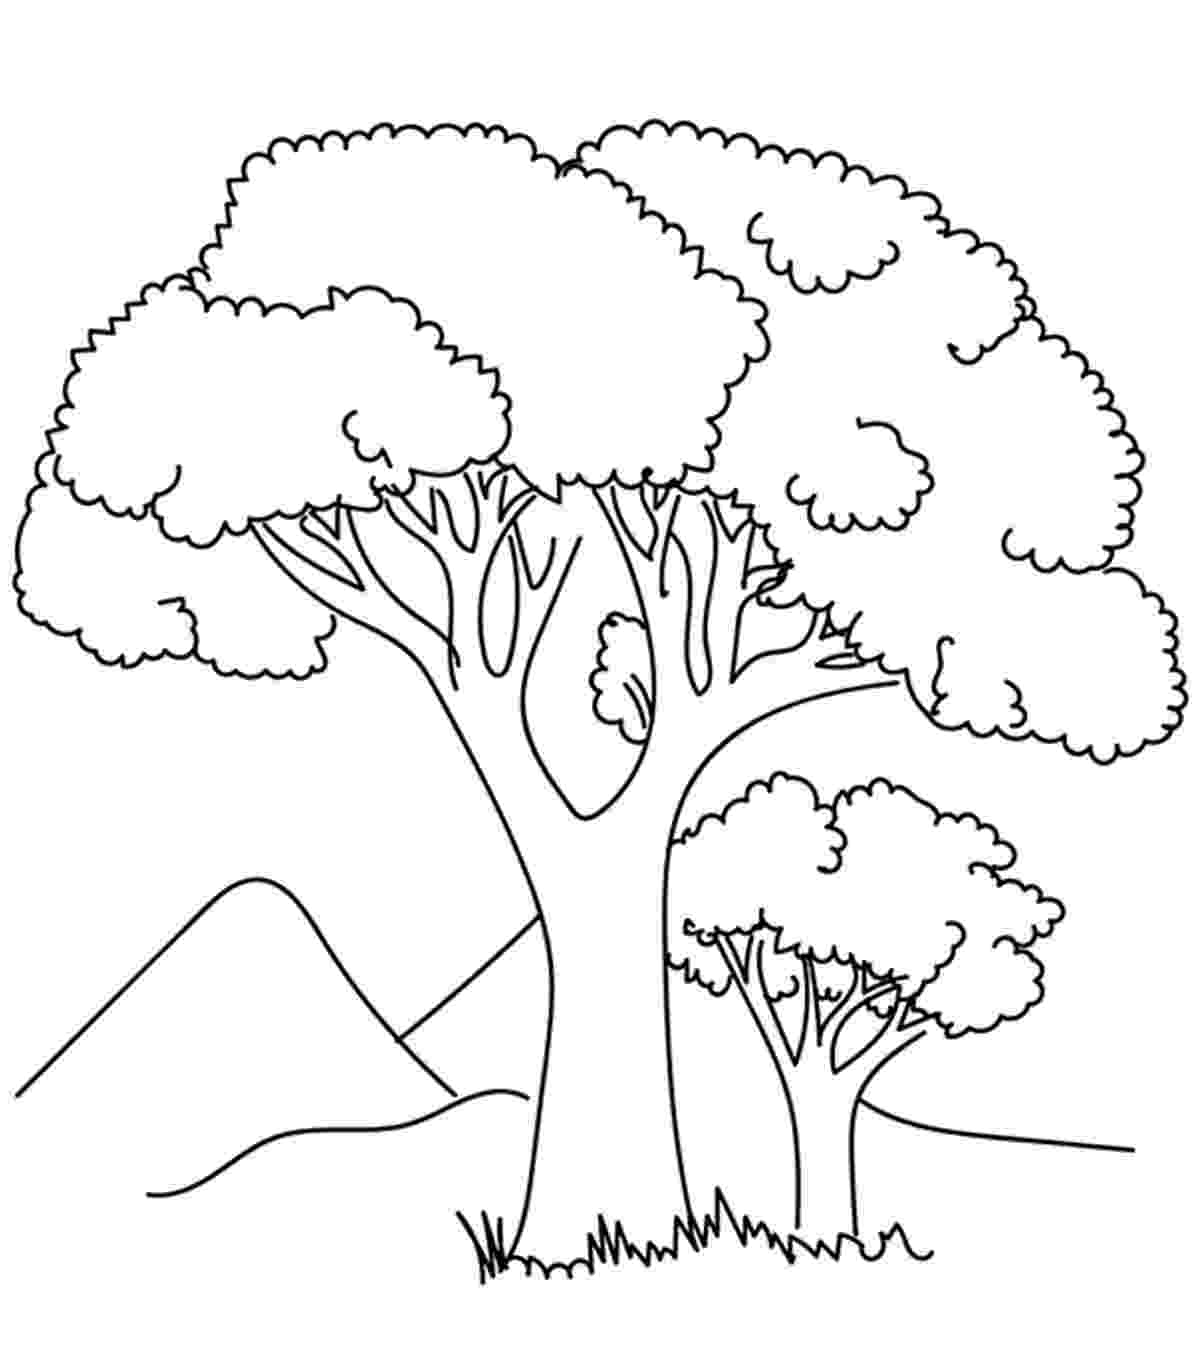 coloring book pages trees free printable tree coloring pages for kids cool2bkids book coloring trees pages